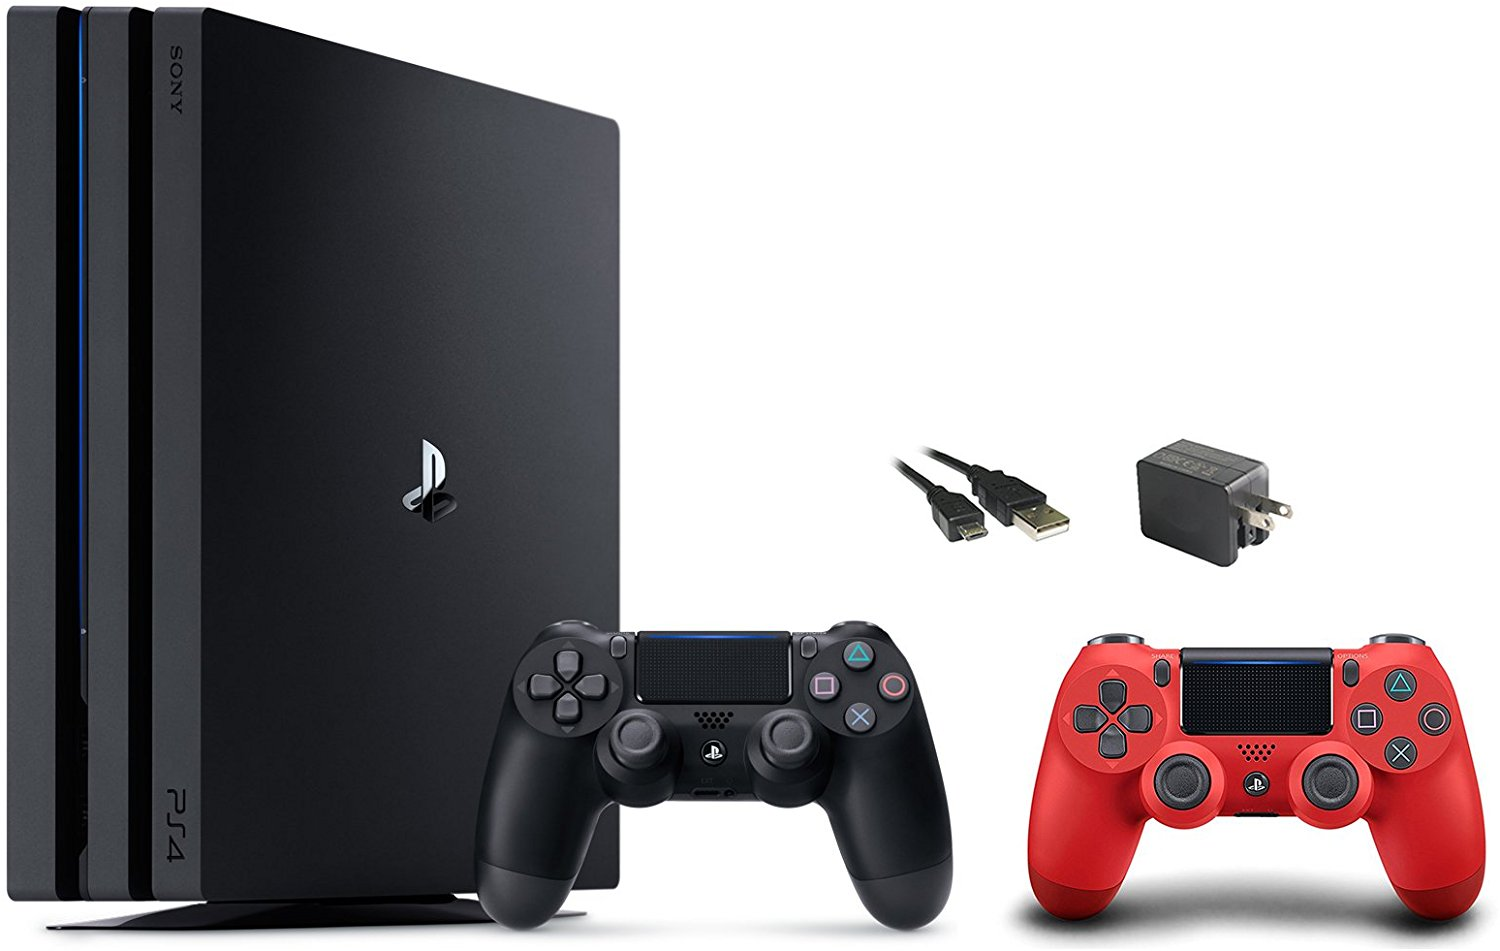 PlayStation 4 Pro Console 3 items Bundle:PS4 Pro 1TB Console,PS4 Dualshock 4 Wireless Controller Red,Mytrix Wal Charger Black